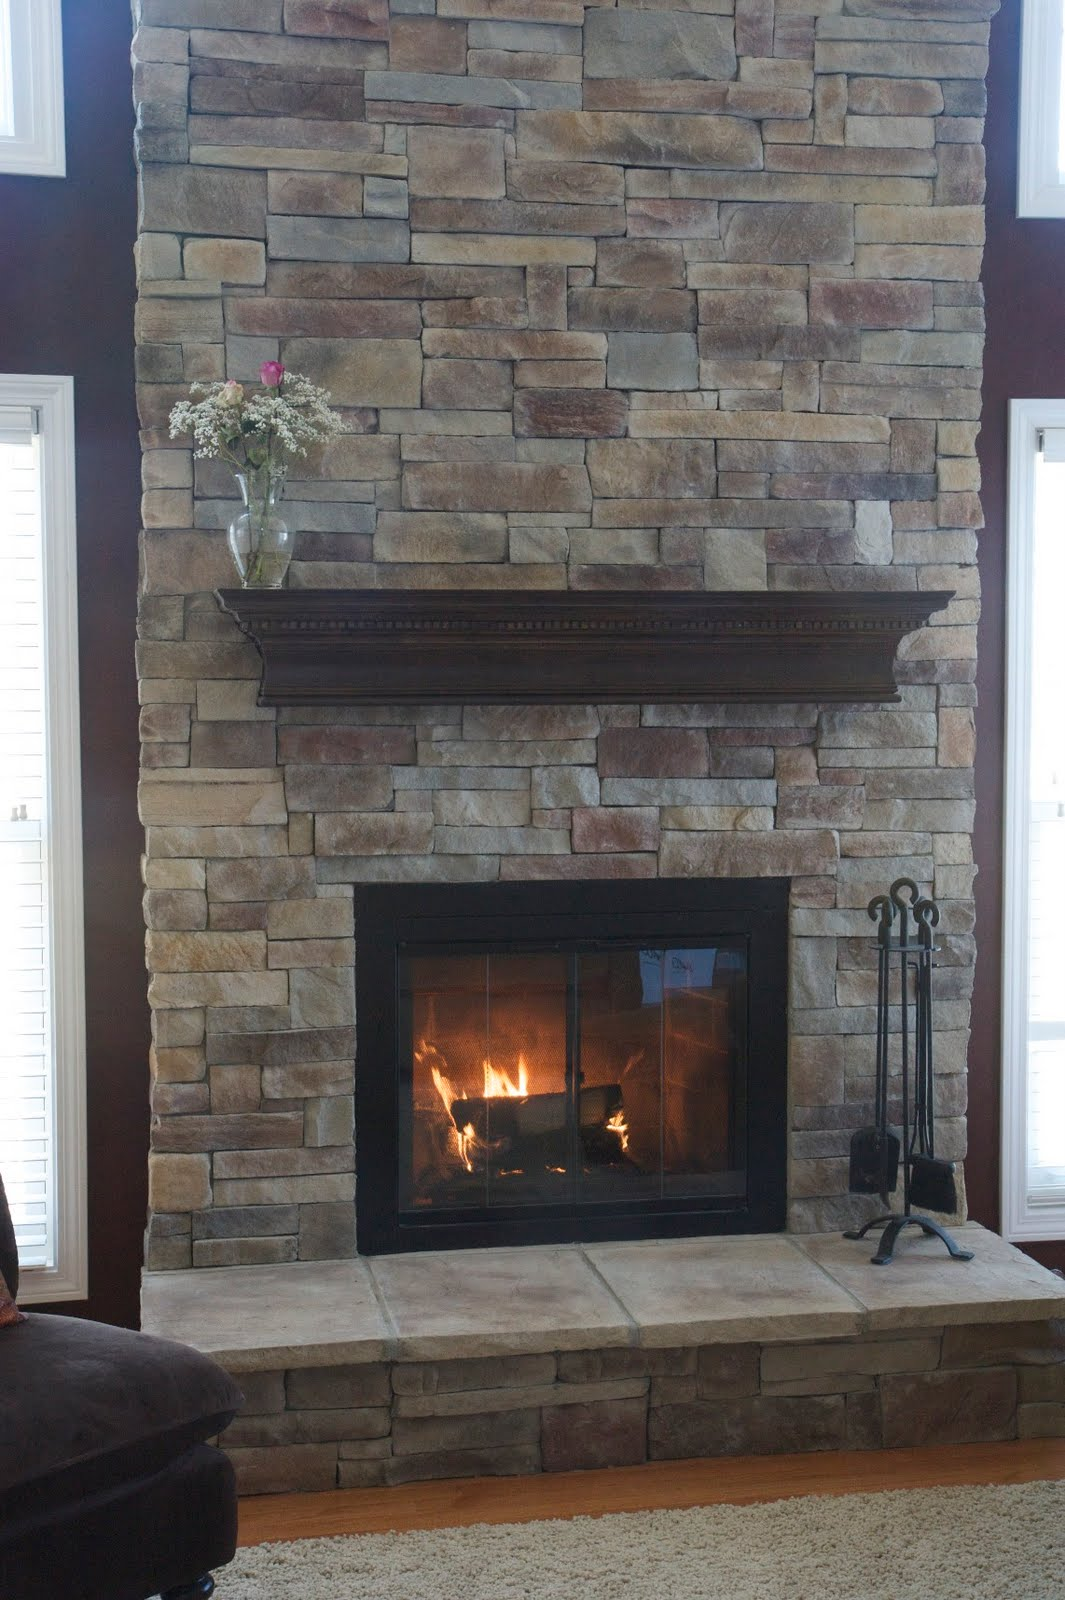 North Star Stone Stone Fireplaces Amp Stone Exteriors Did